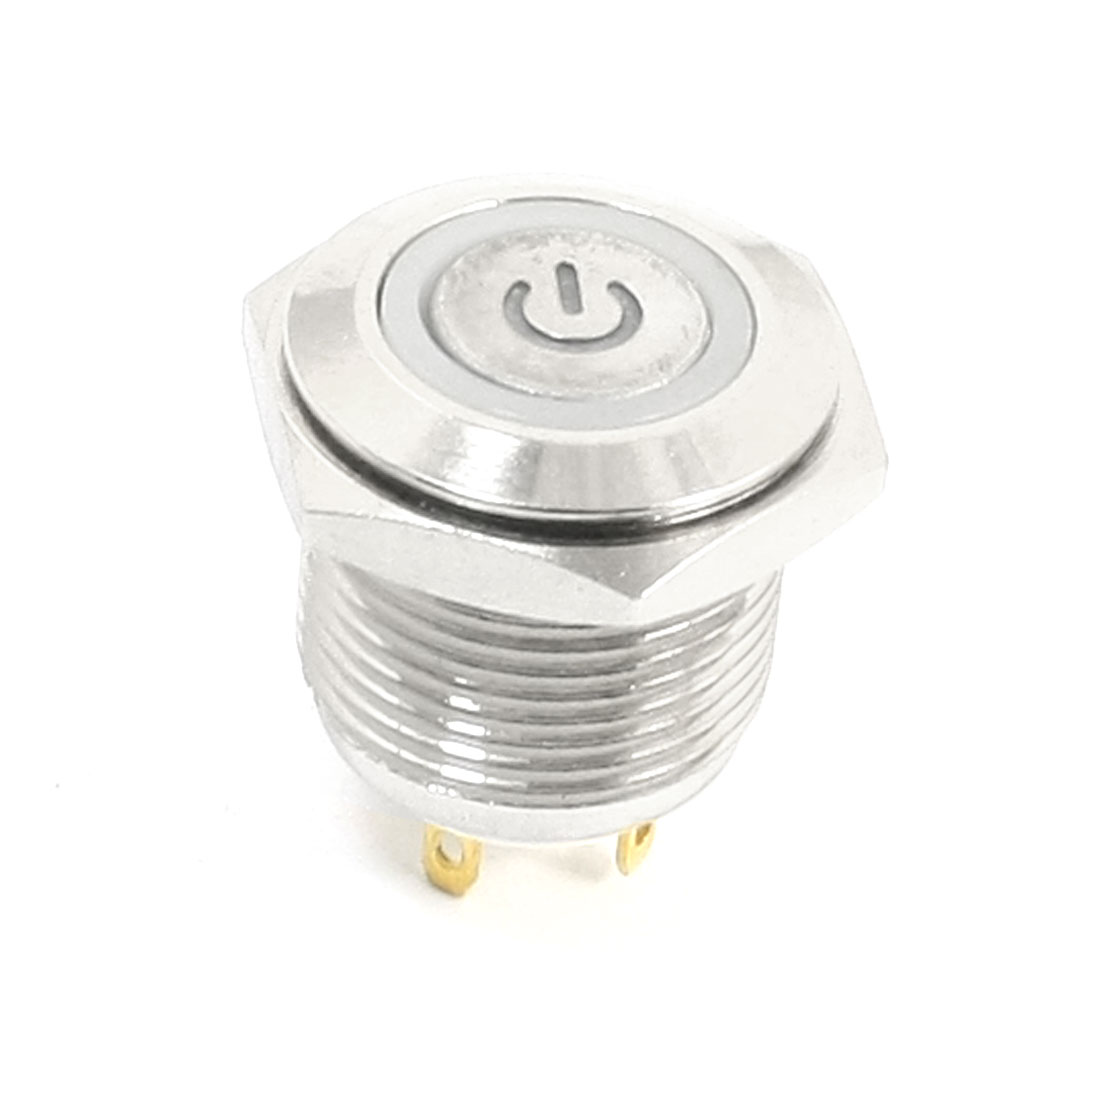 DC 12V Blue Power Indicator LED Angel Eye SPST 4 Pins Flat Head Momentary Metal Pushbutton Switch 16mm Thread